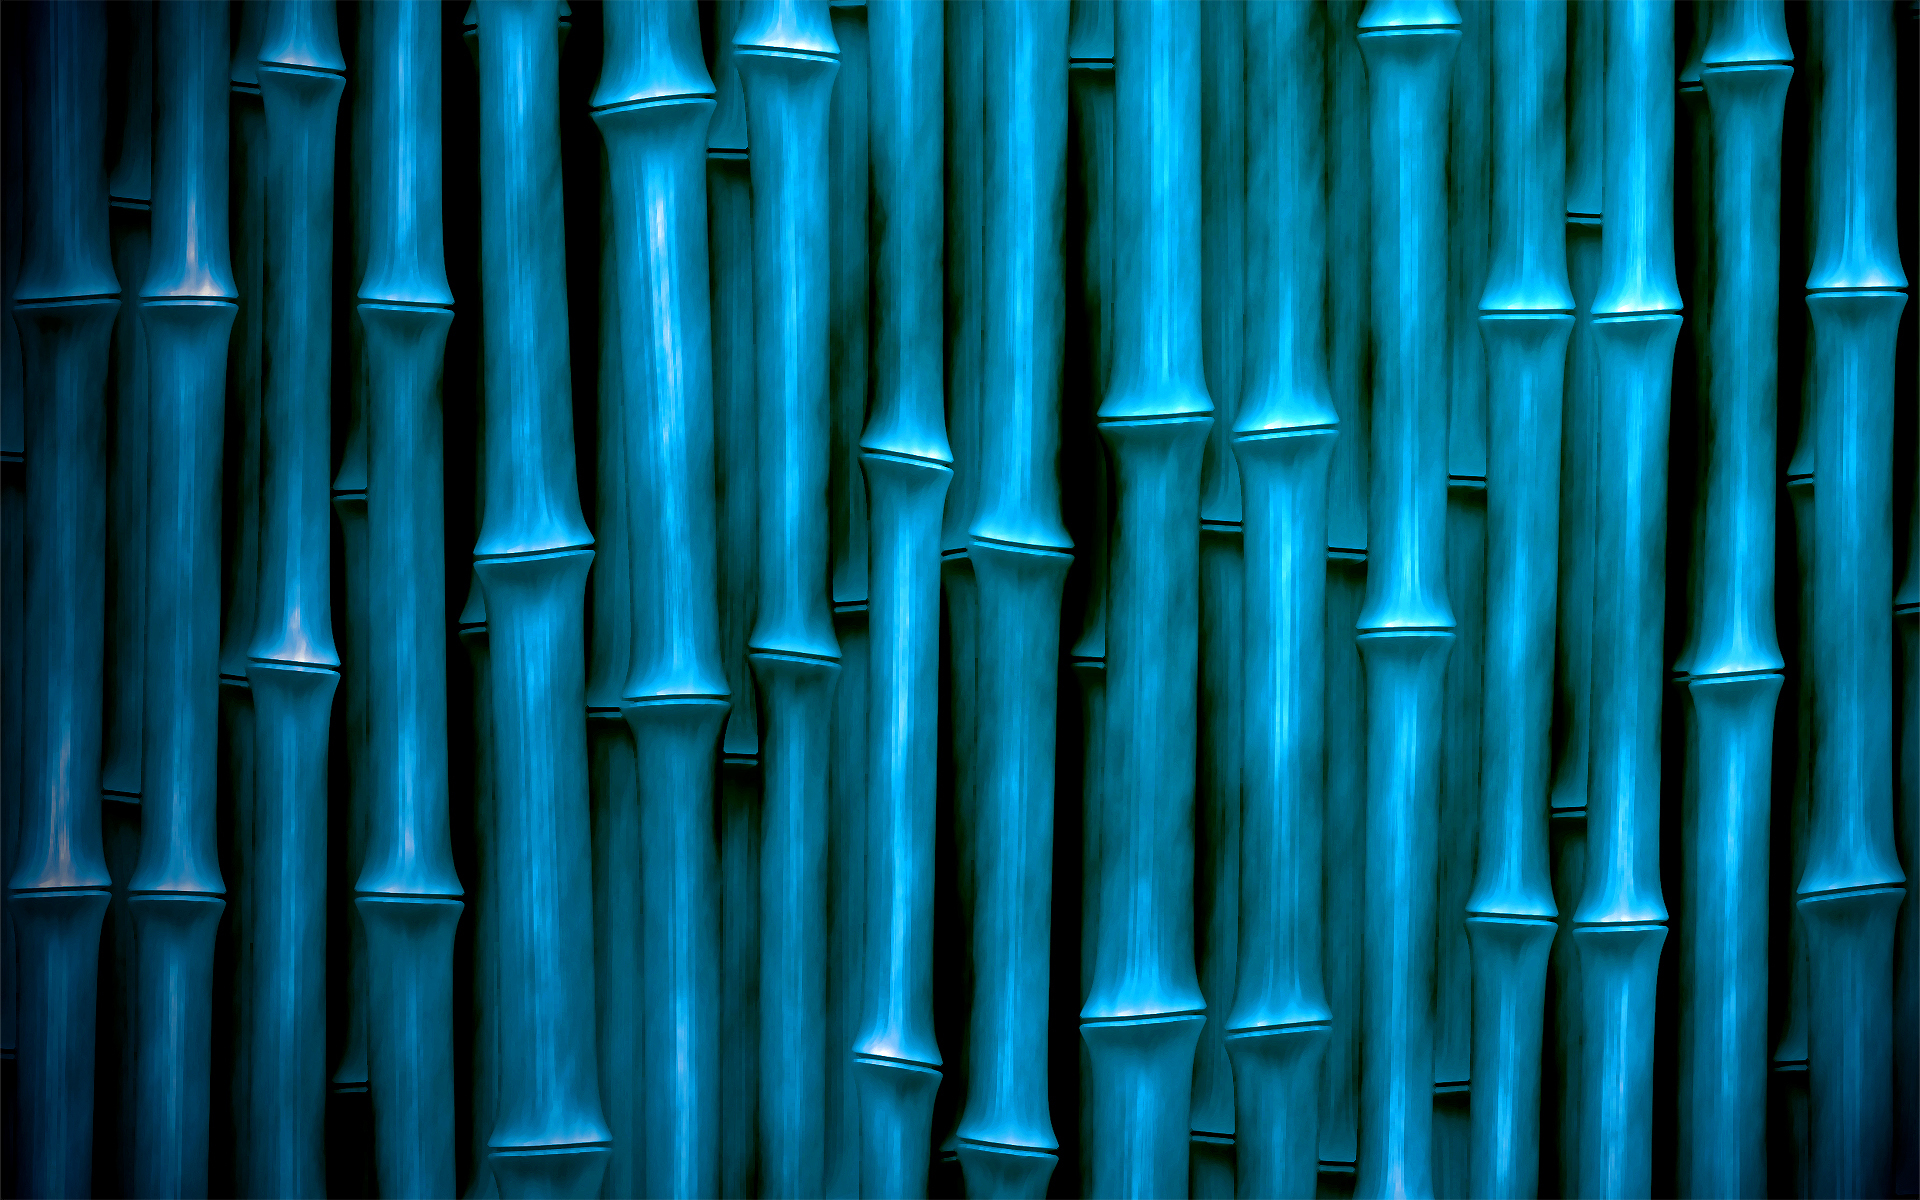 blue bamboo, texture bamboo , blue bamboo texture, photo, background